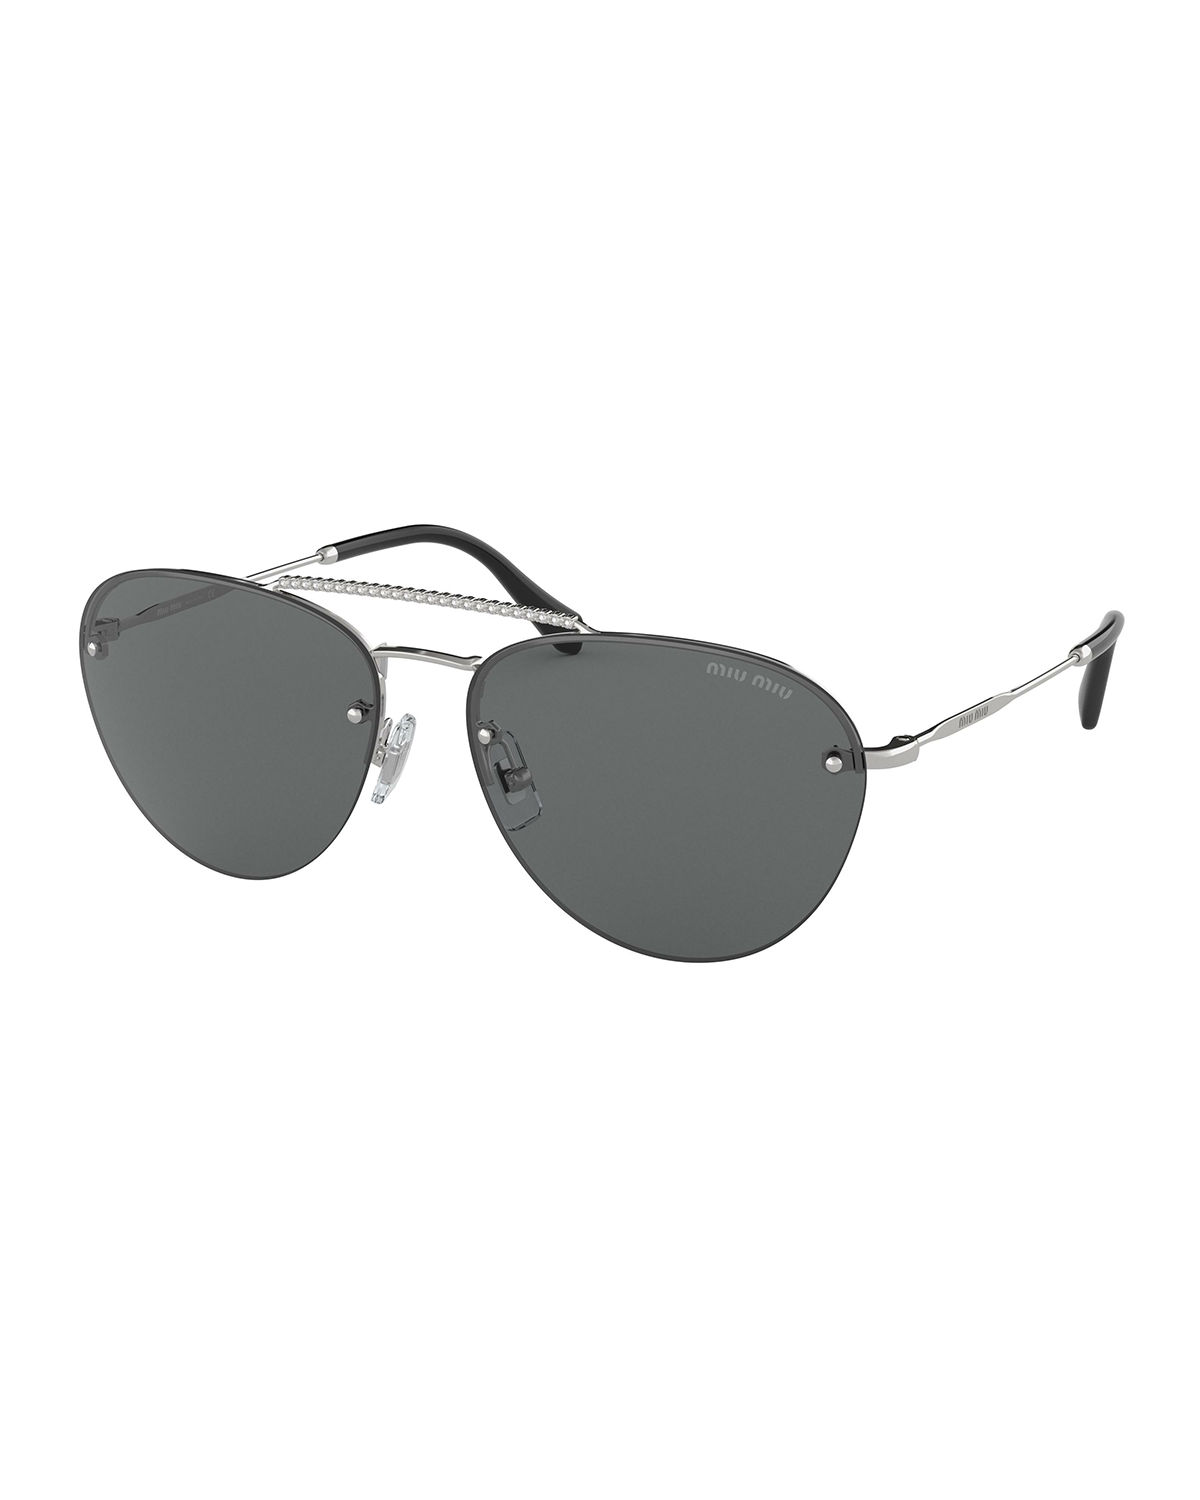 1ef33aeddcb Miu Miu Rimless Mirrored Aviator Sunglasses